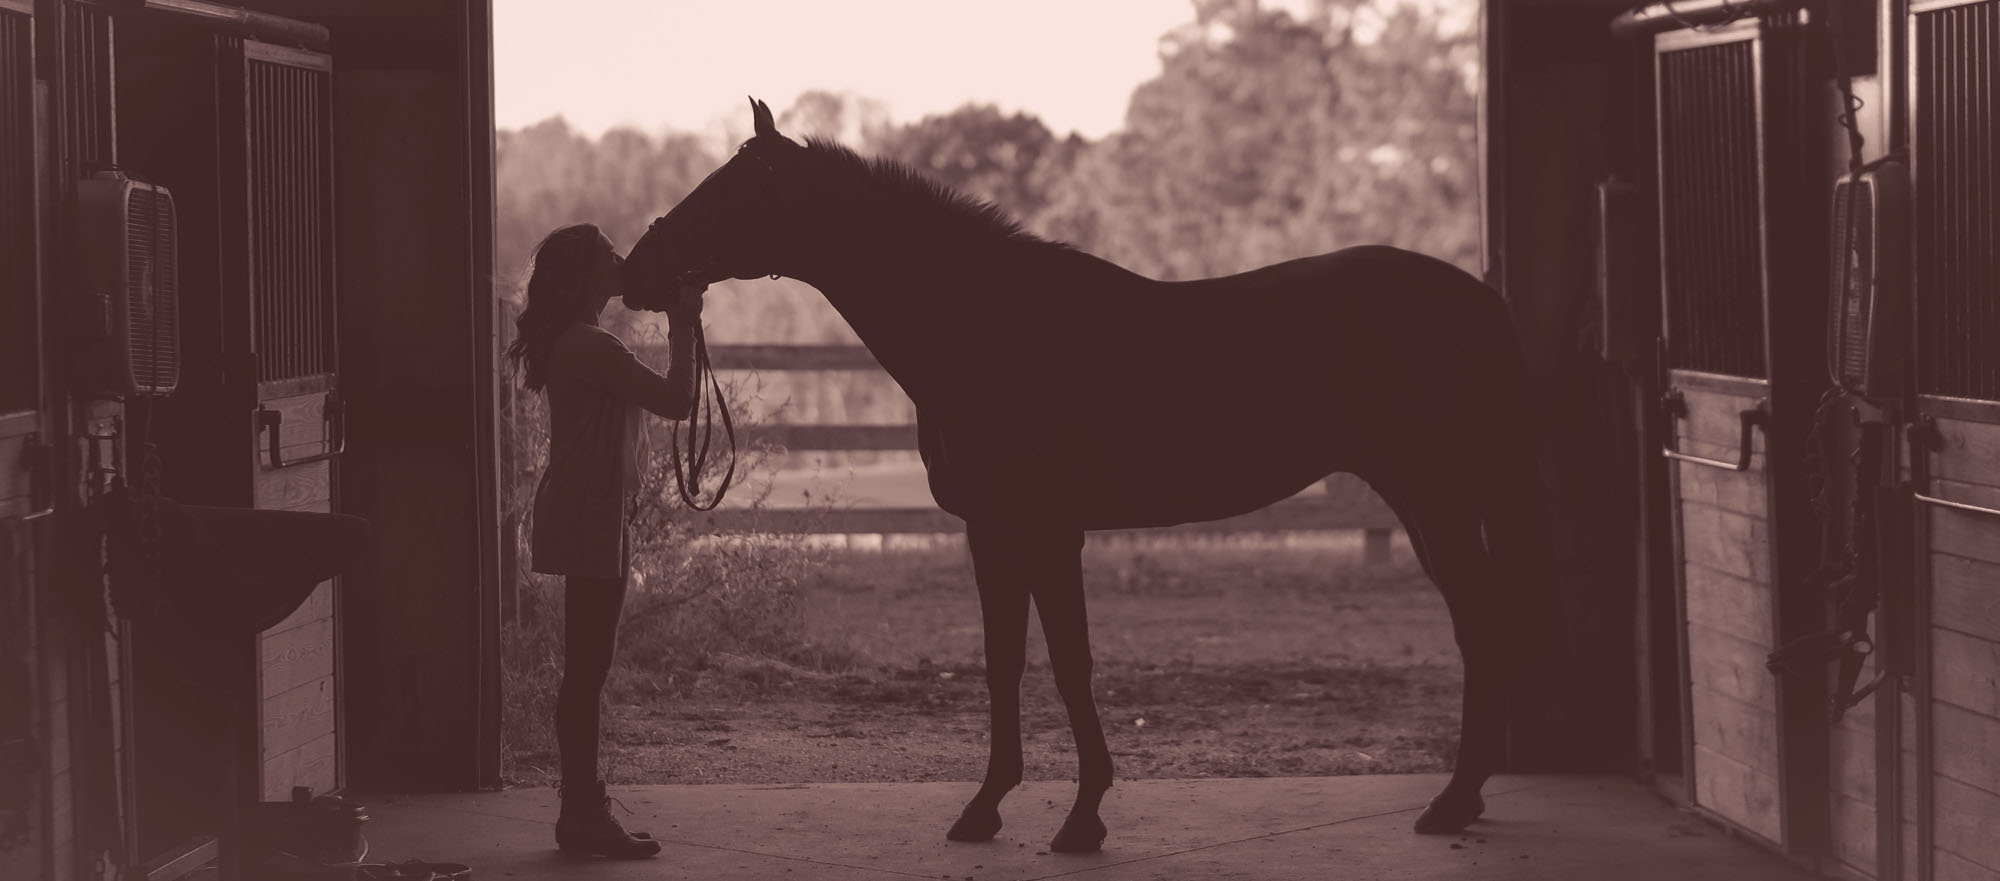 Equestrians: Schooling – how can we stay motivated?